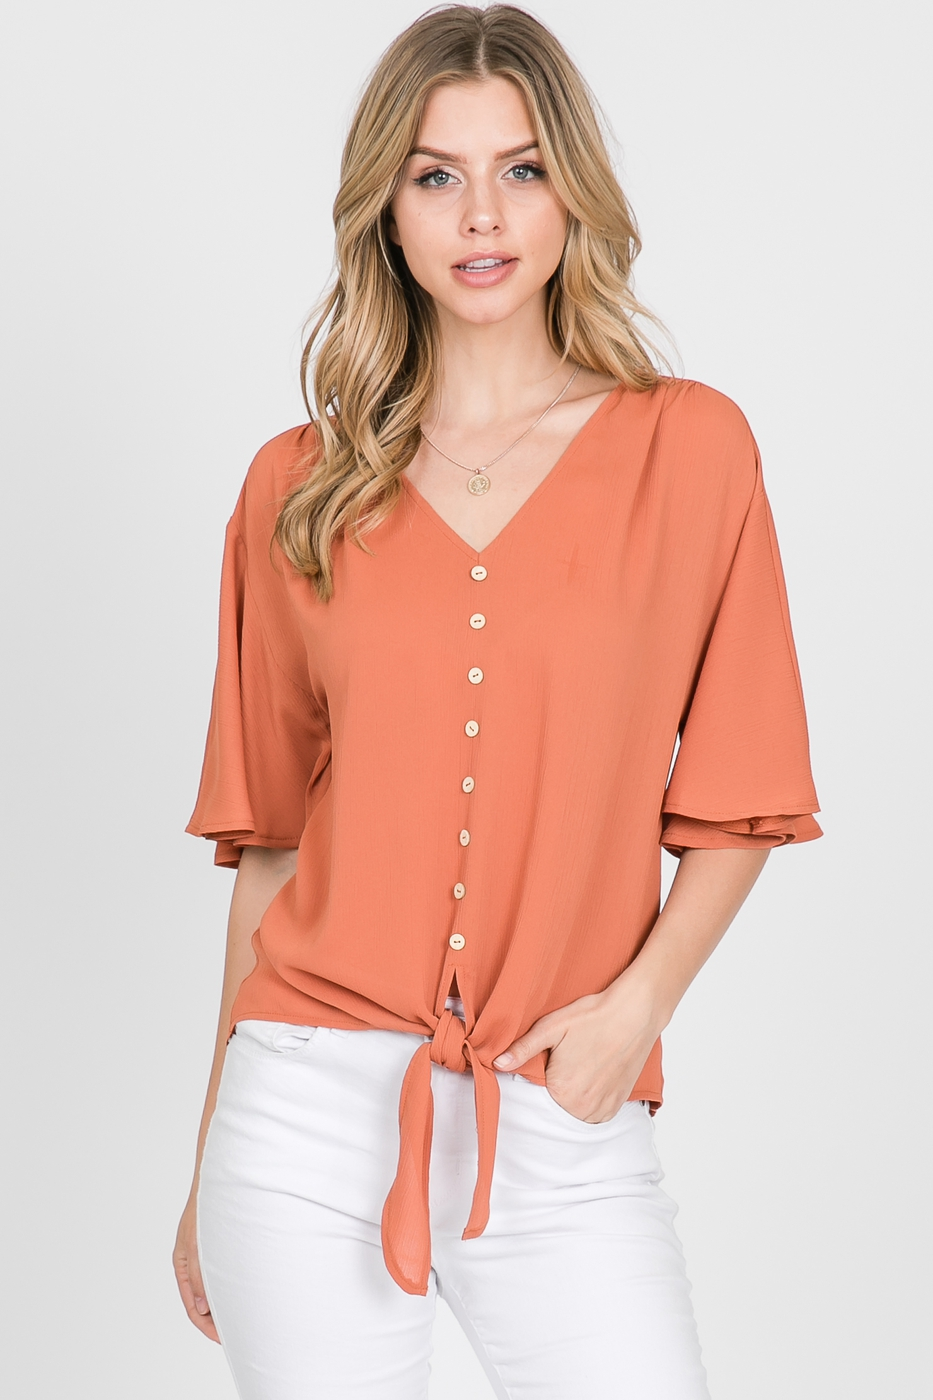 Solid Short Sleeve Button Down Top - orangeshine.com